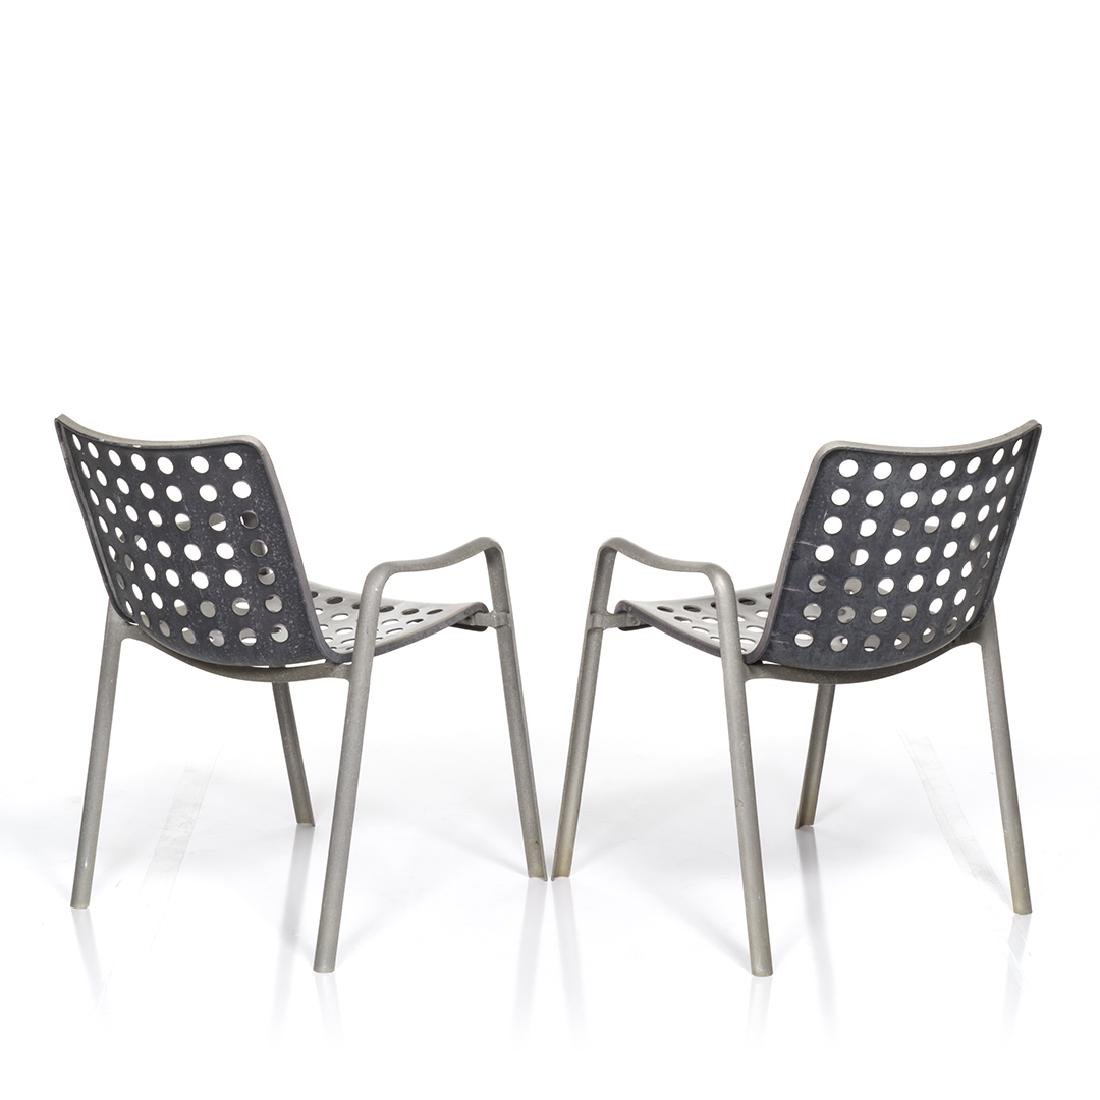 Hans Coray Landi Chairs (2) - 3